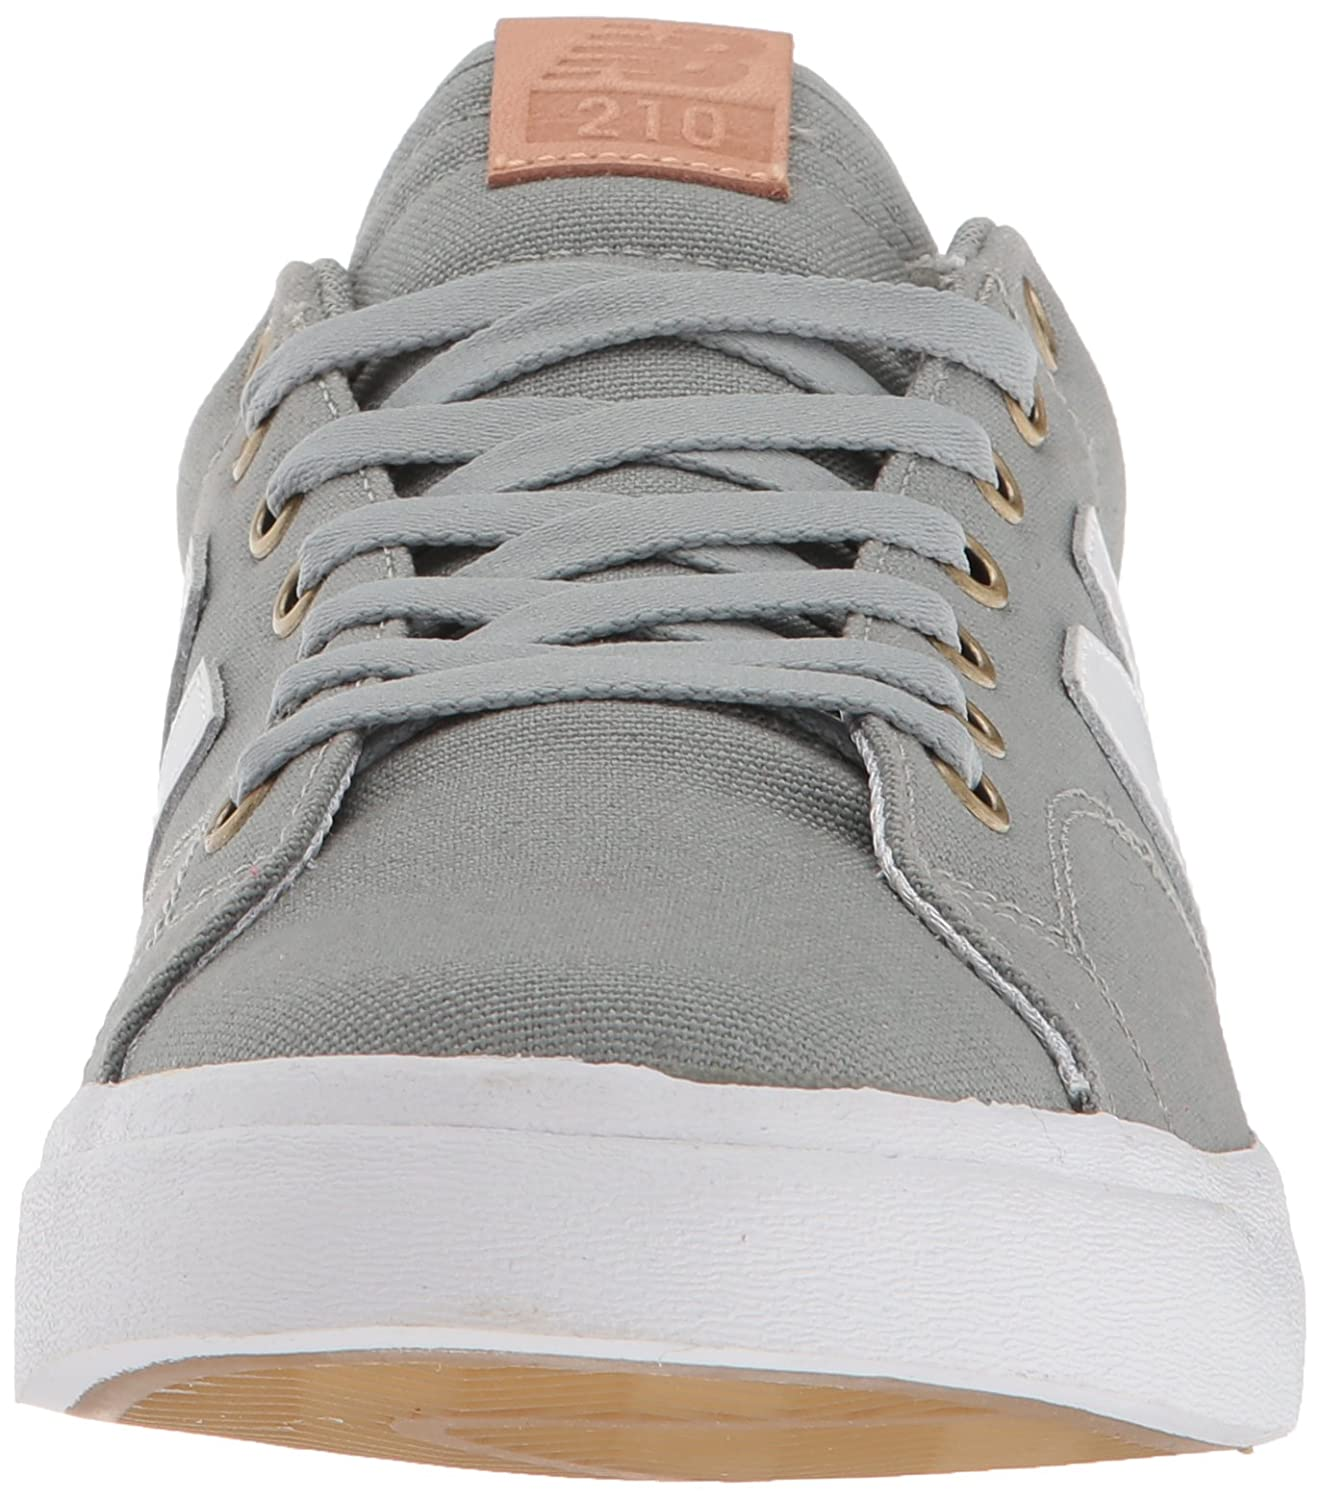 New New New Balance Skate Style Am210 schuhe 62f60c